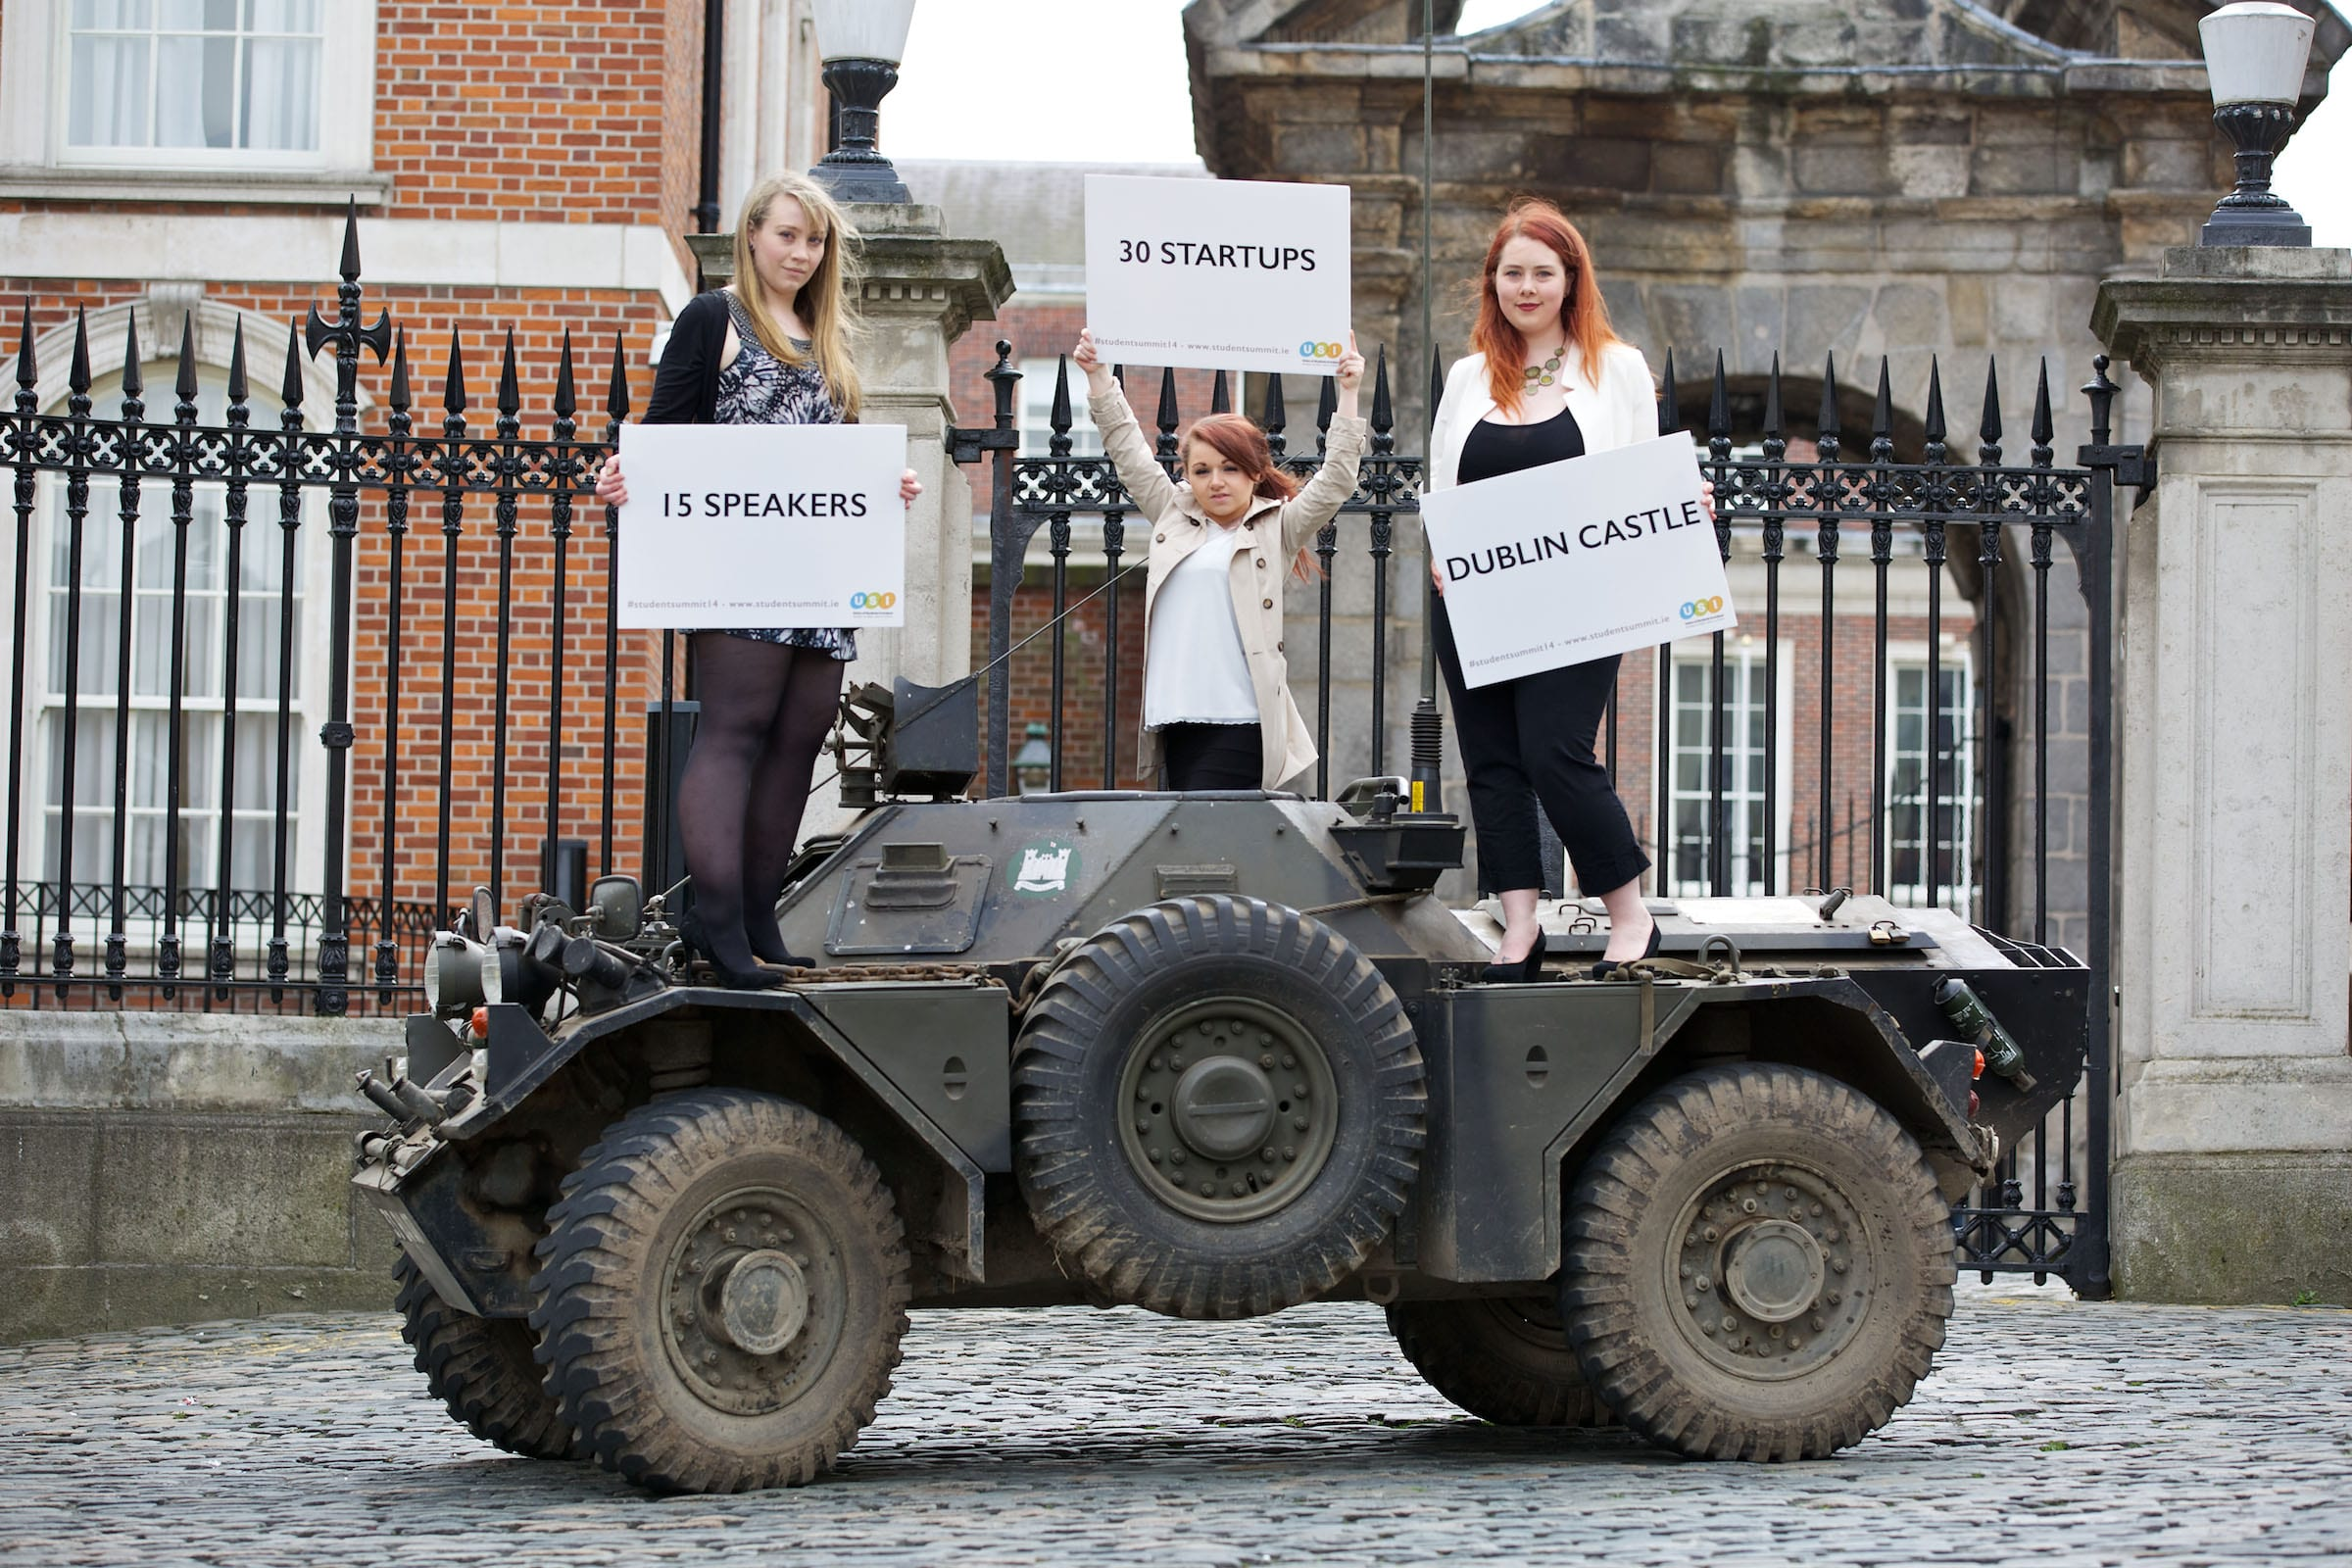 The launch of the USI Student Summit 2014: Student entrepreneurs will be 'invading' Dublin Castle on April 8th.